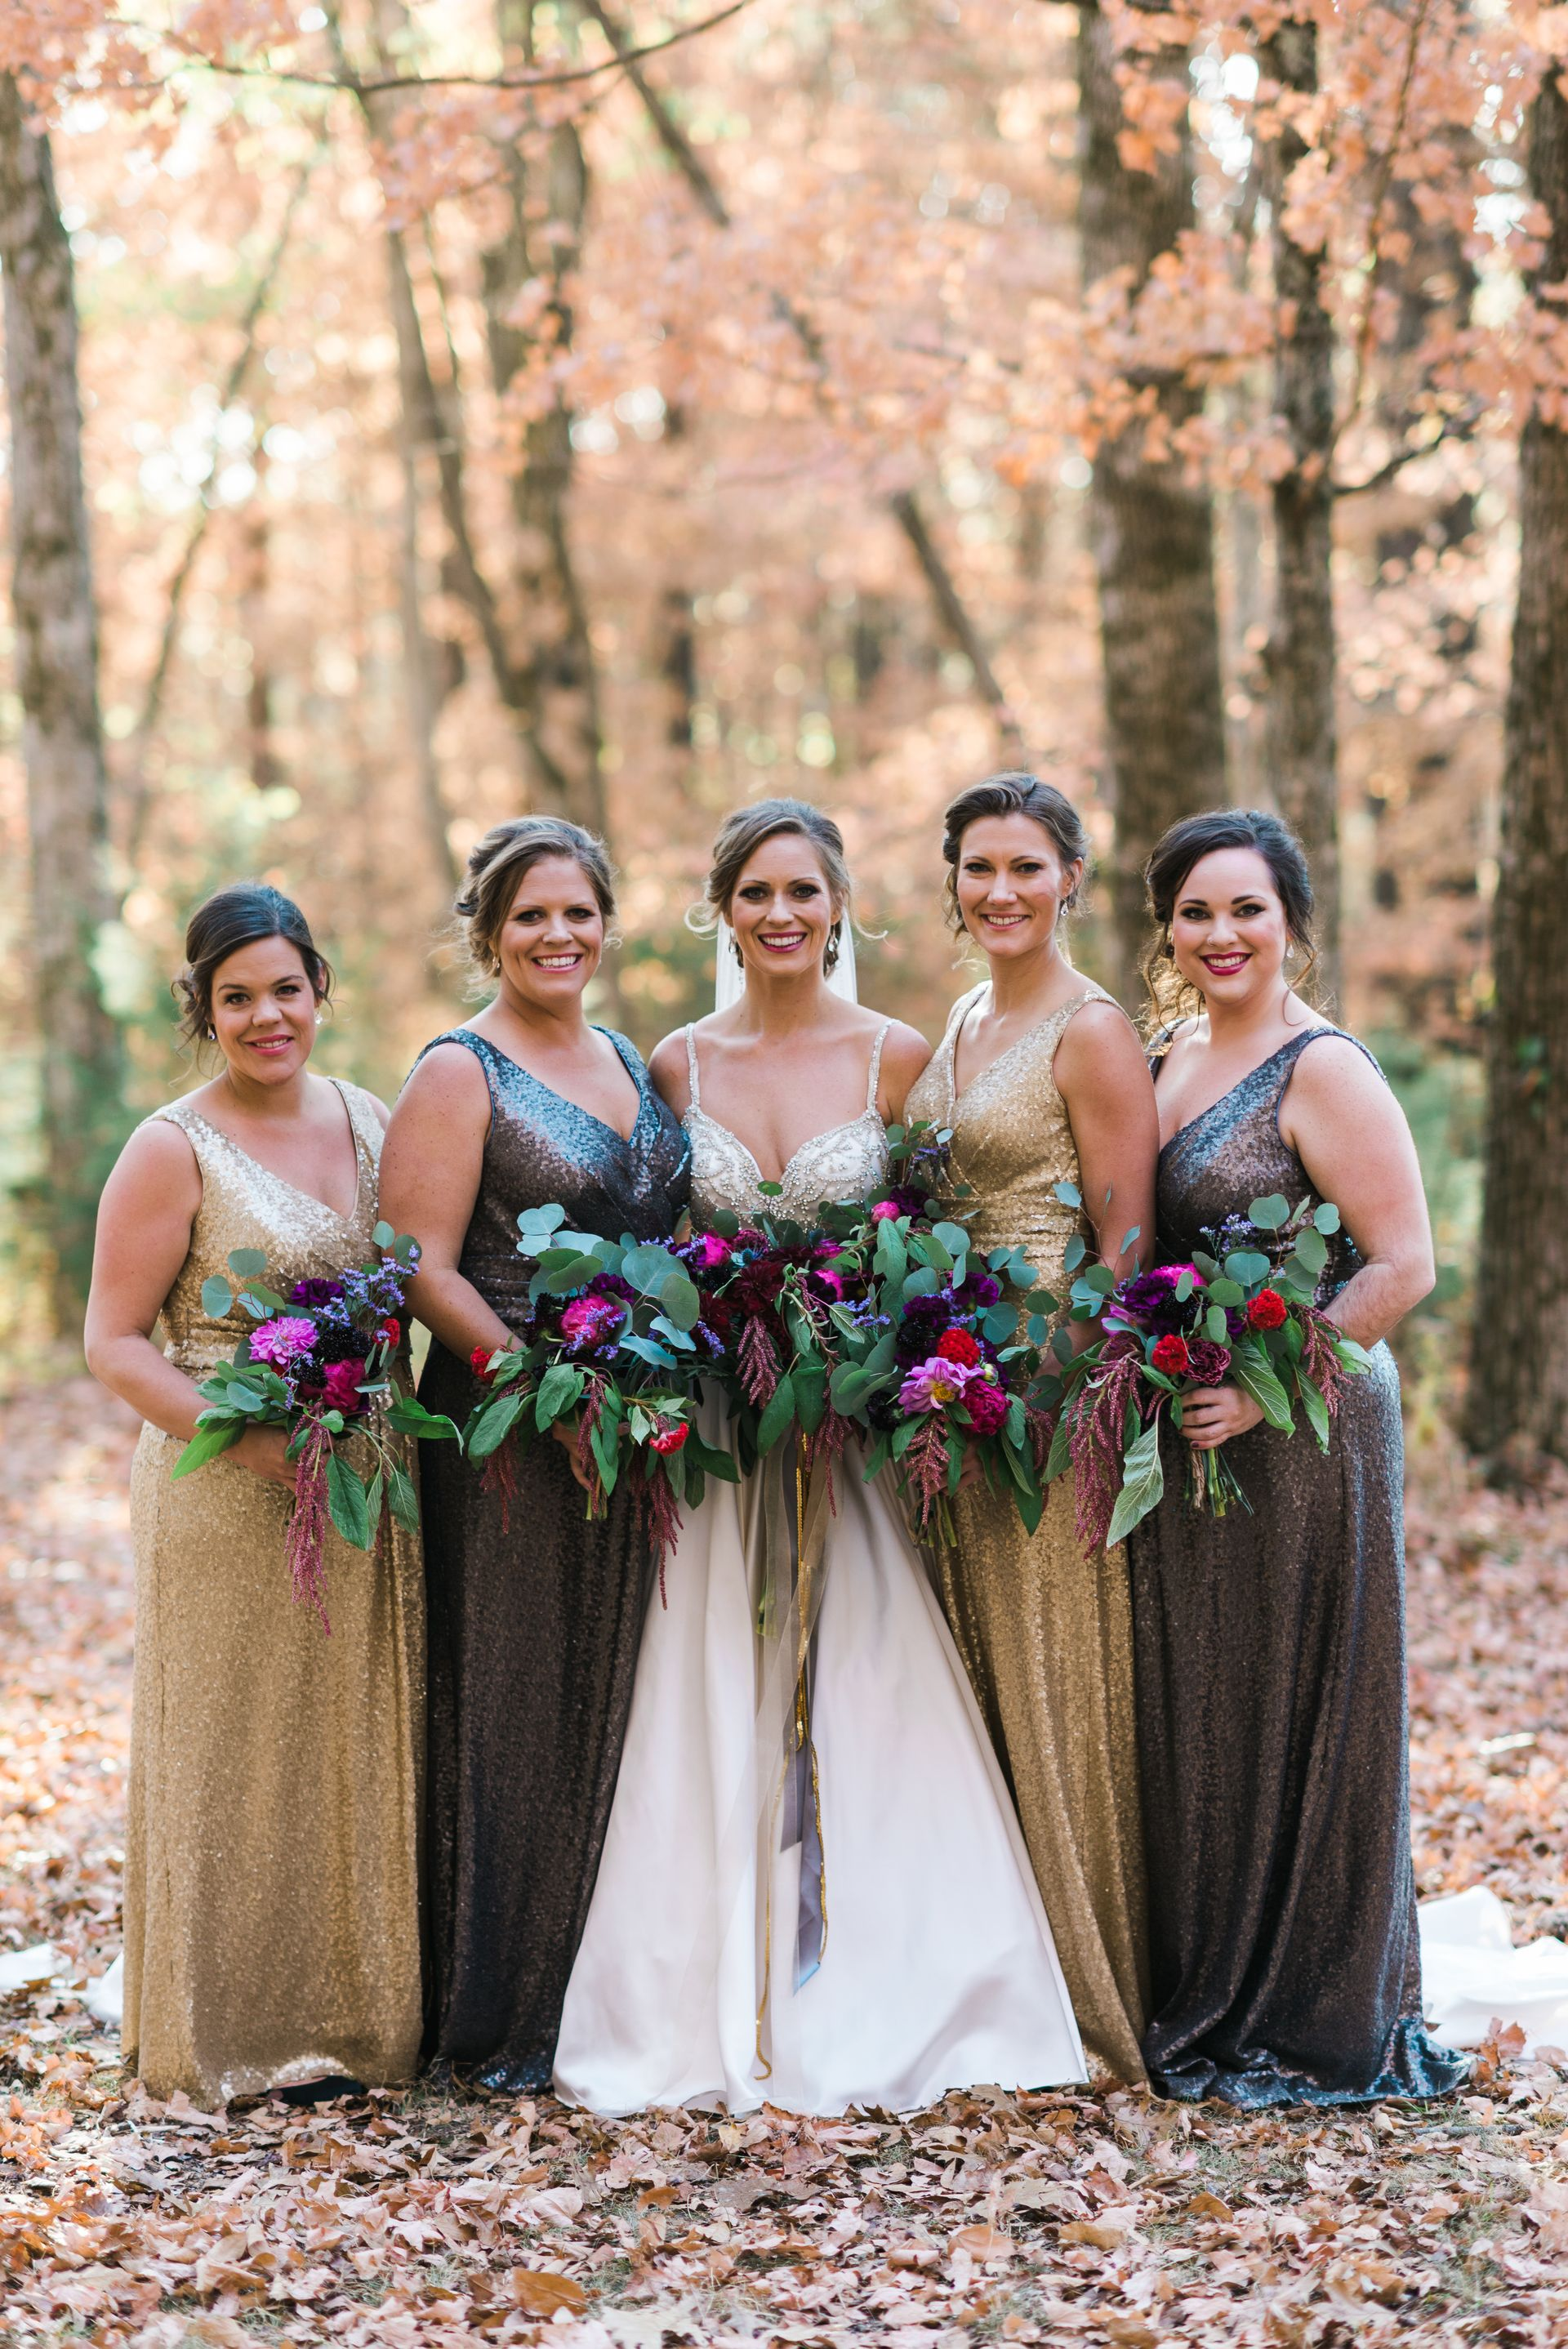 Mixed Metallic Bridesmaid Dresses V Neck Gold Dark Silver Chad Erickson Photography